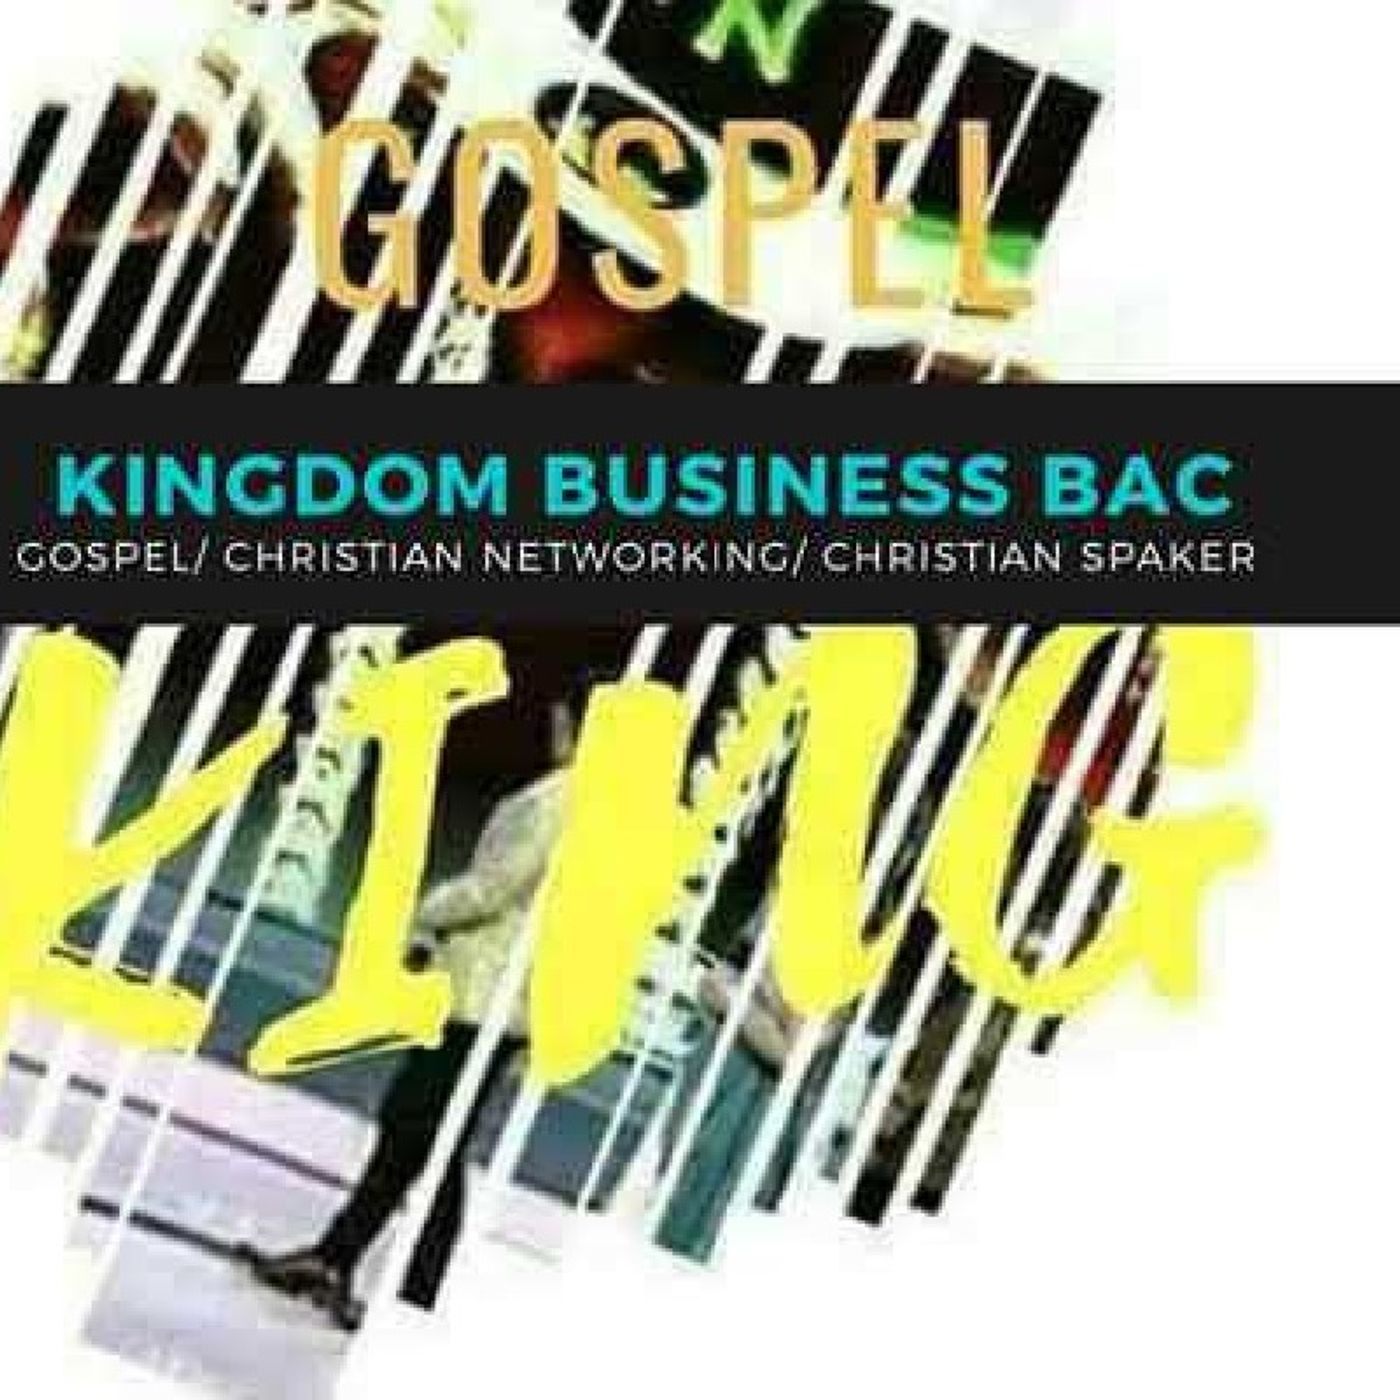 Episode 110 - KIMGDOM BUSINESS Bac Ministry's show